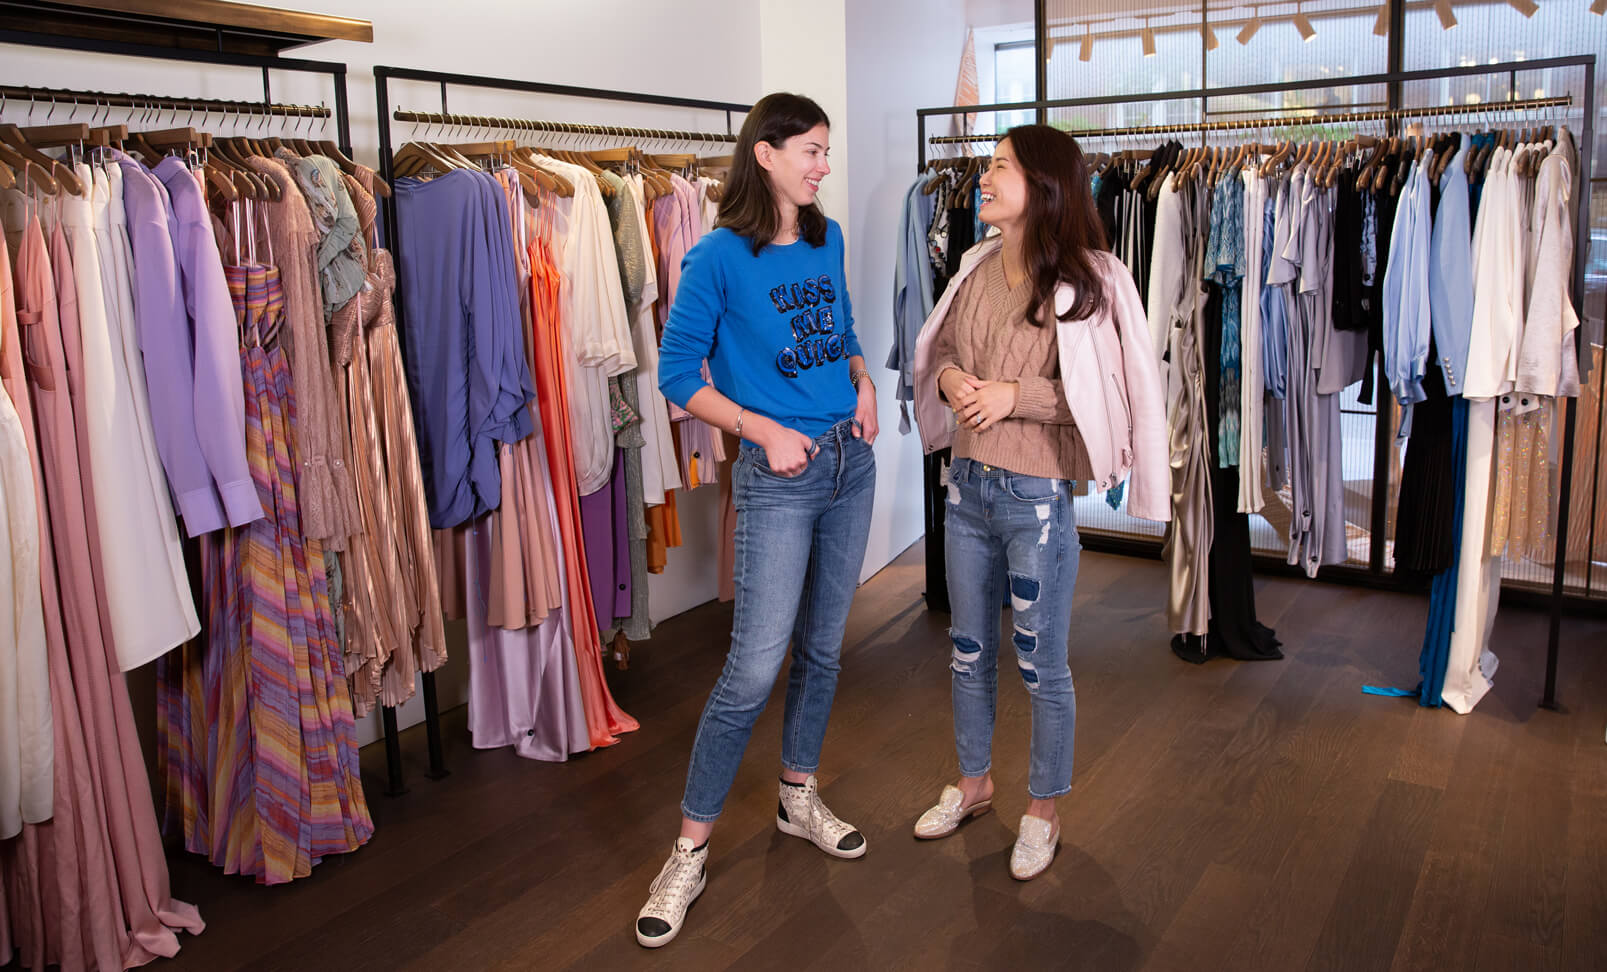 Women chatting in a store